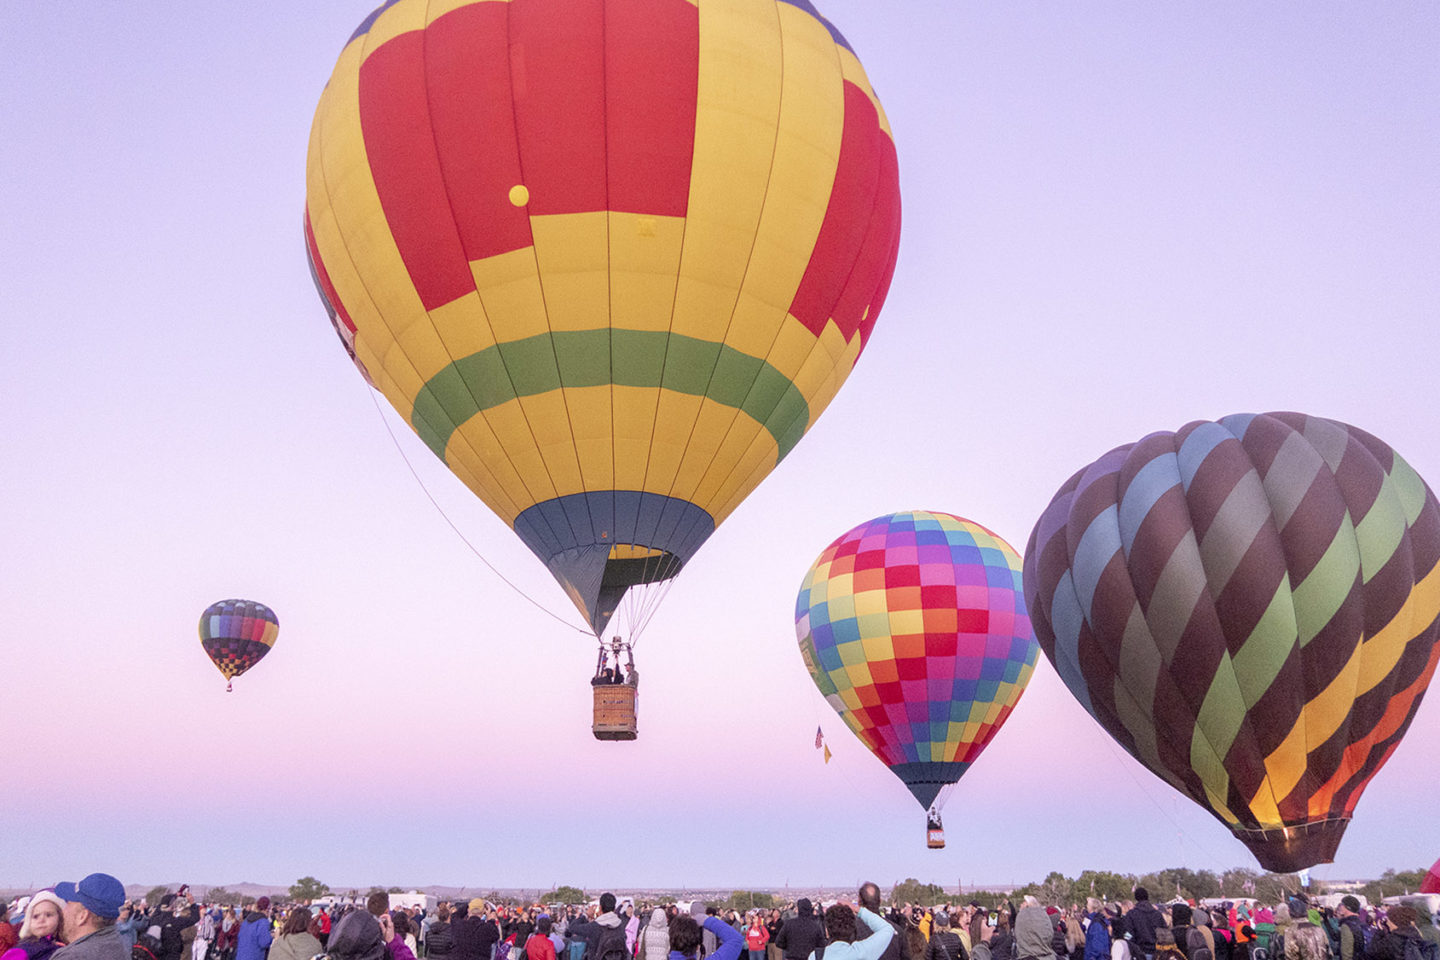 Sunrise Mass Ascension of Hot air balloons at Albuquerque Balloon Fiesta